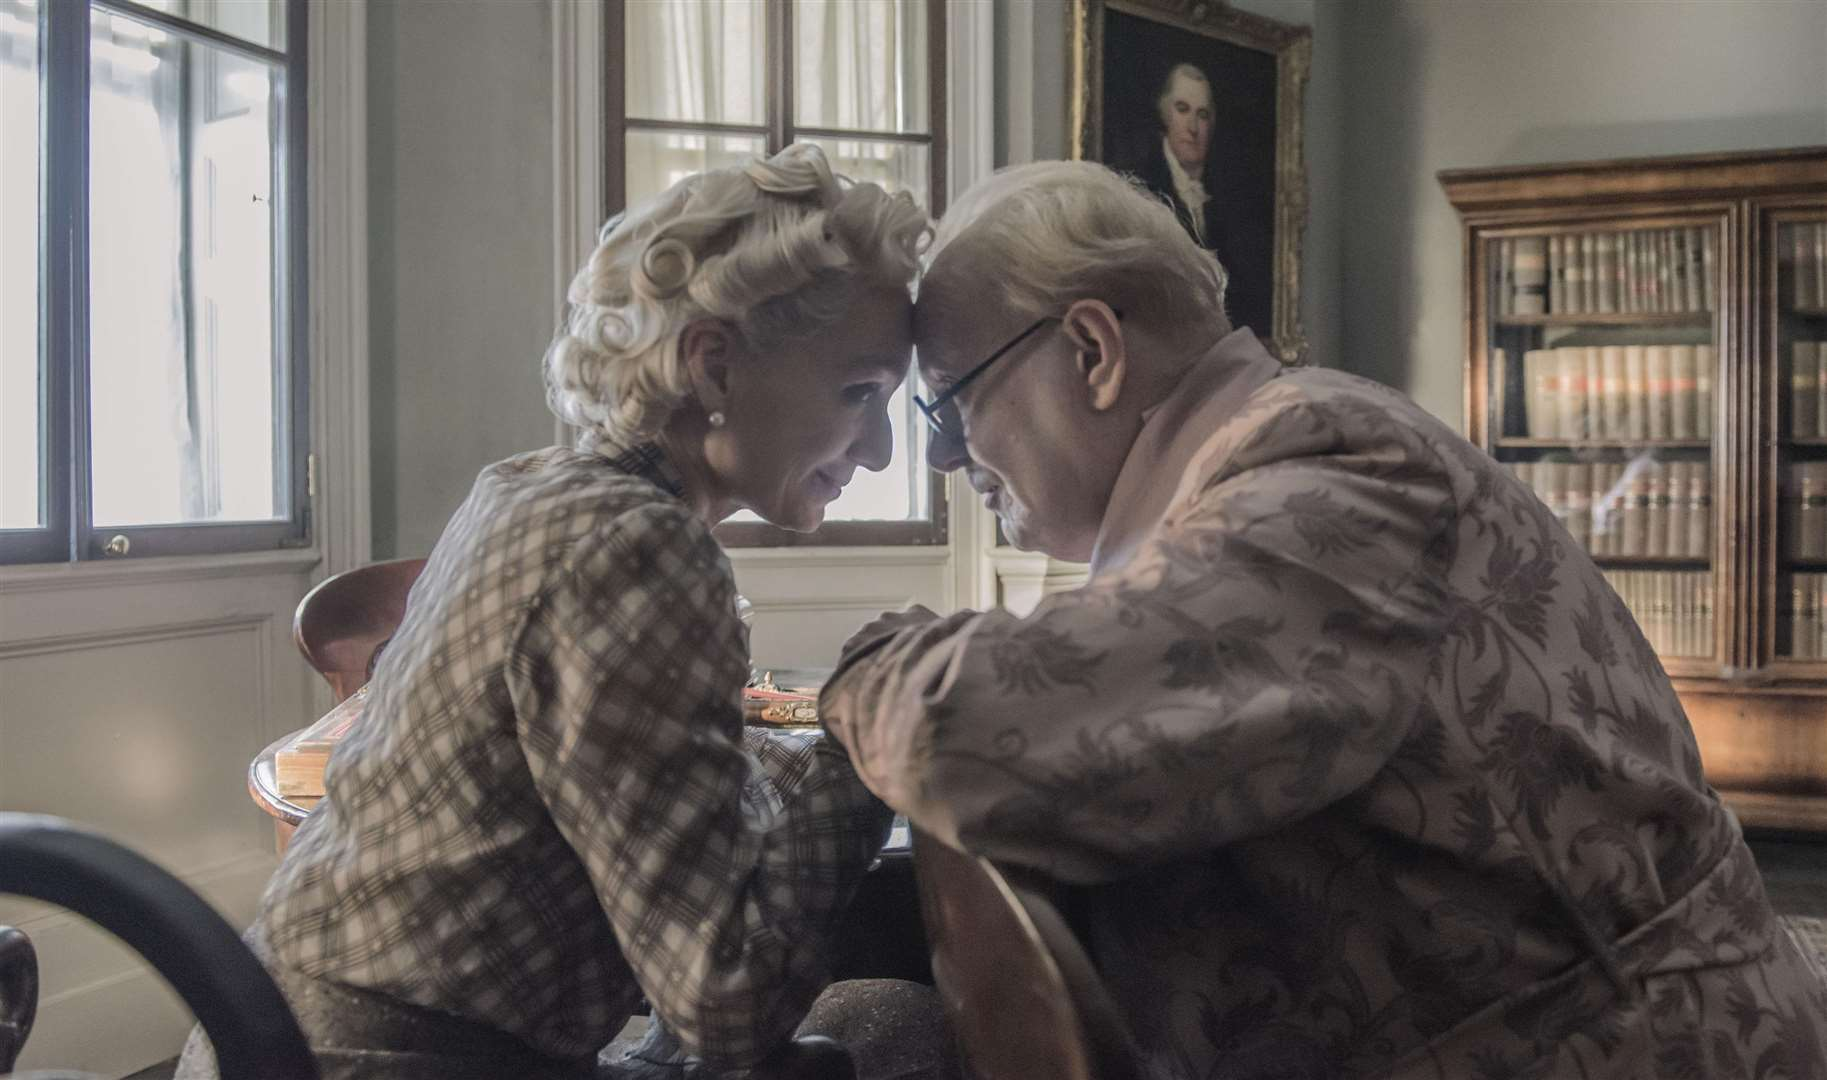 Kristin Scott Thomas as Clementine Churchill and Gary Oldman as Winston Churchill in Darkest Hour. Picture: PA Photo/Universal Pictures International/Focus Features/Jack English